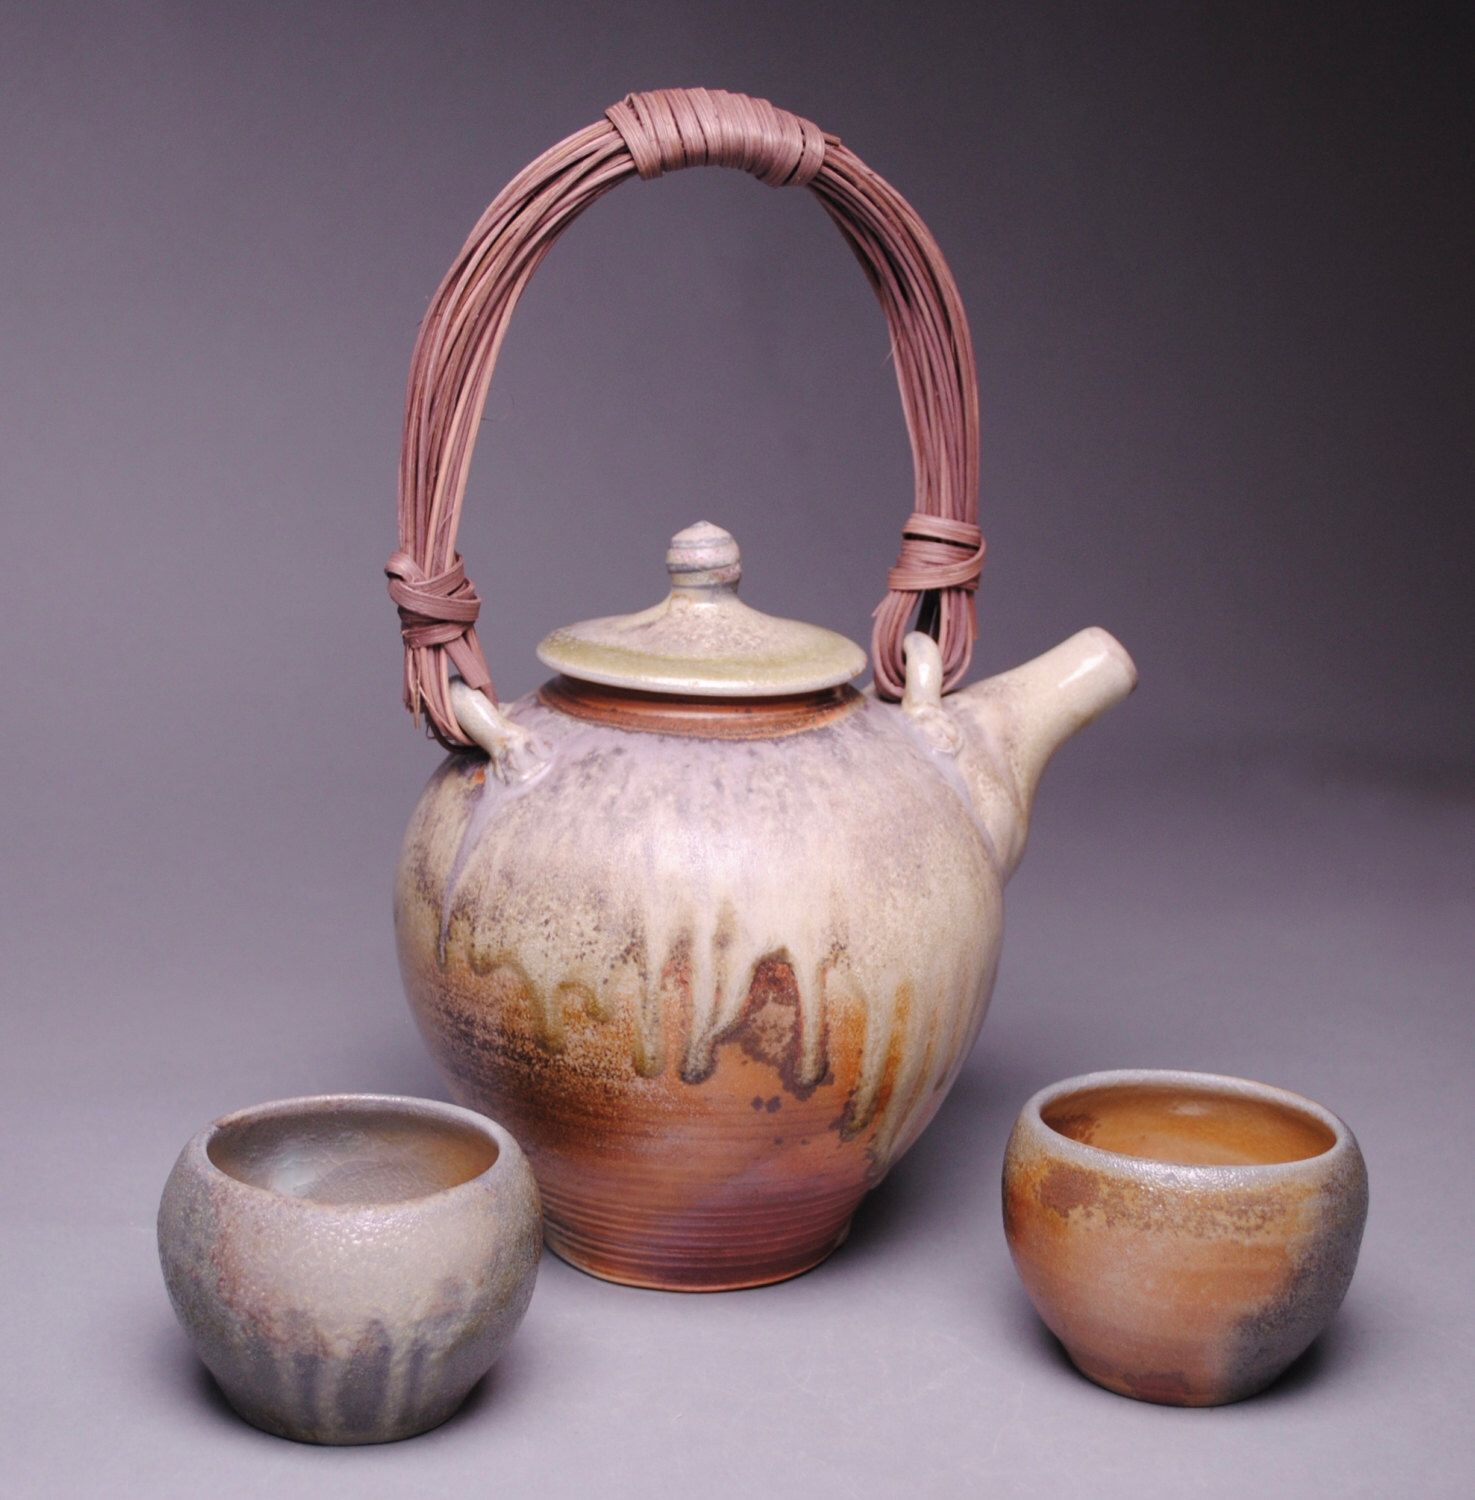 Wood Fired Tea Set 2 Bowls D77 by JohnMcCoyPottery on Etsy https://www.etsy.com/listing/277588888/wood-fired-tea-set-2-bowls-d77